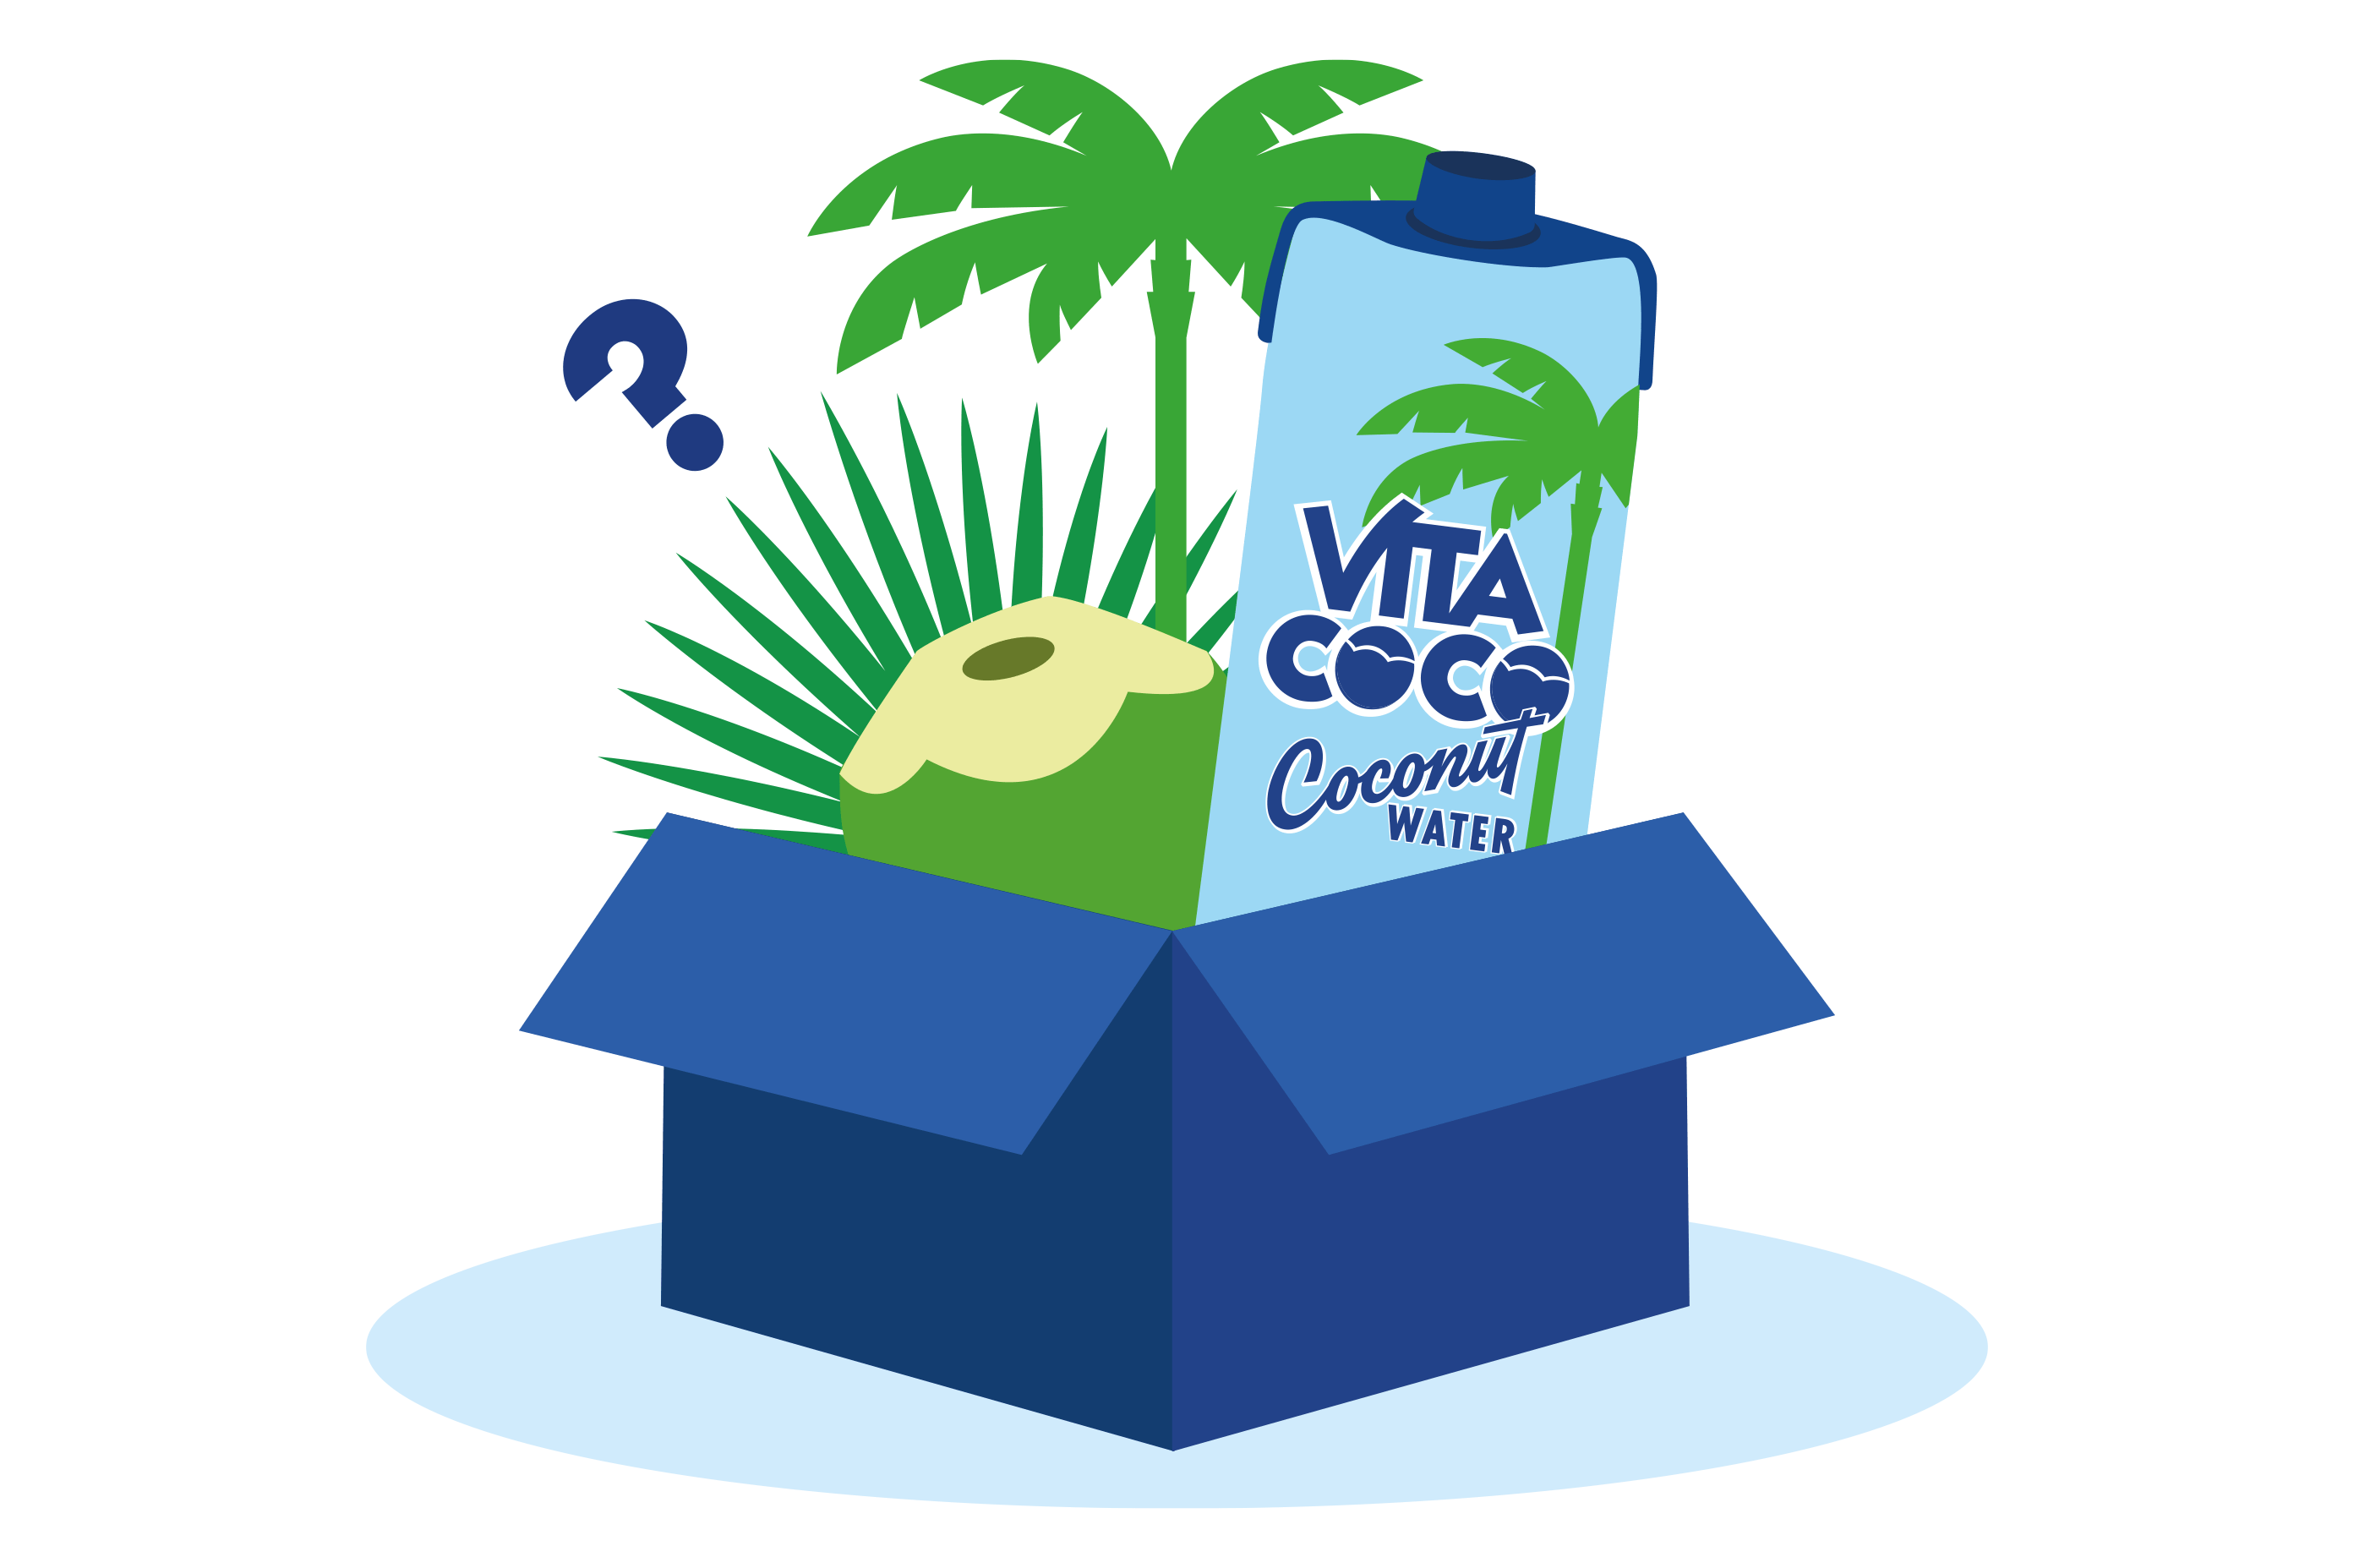 Box with Vita Coco Products